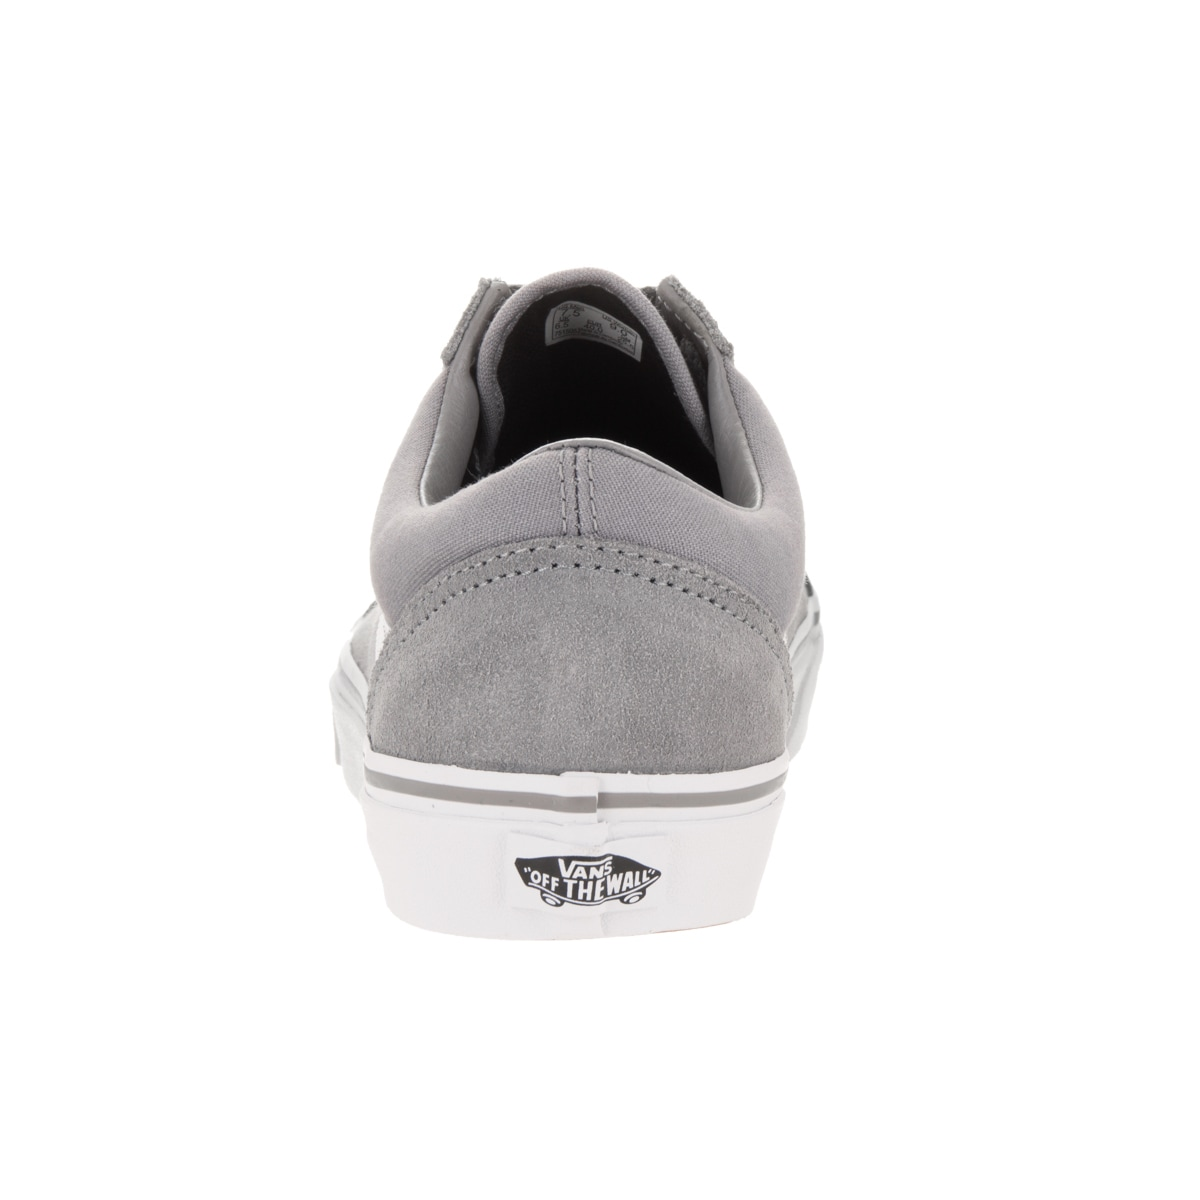 6e880f23b0 Shop Vans Old Skool Grey and White Suede and Canvas Skate Shoe - Free  Shipping Today - Overstock - 13312161